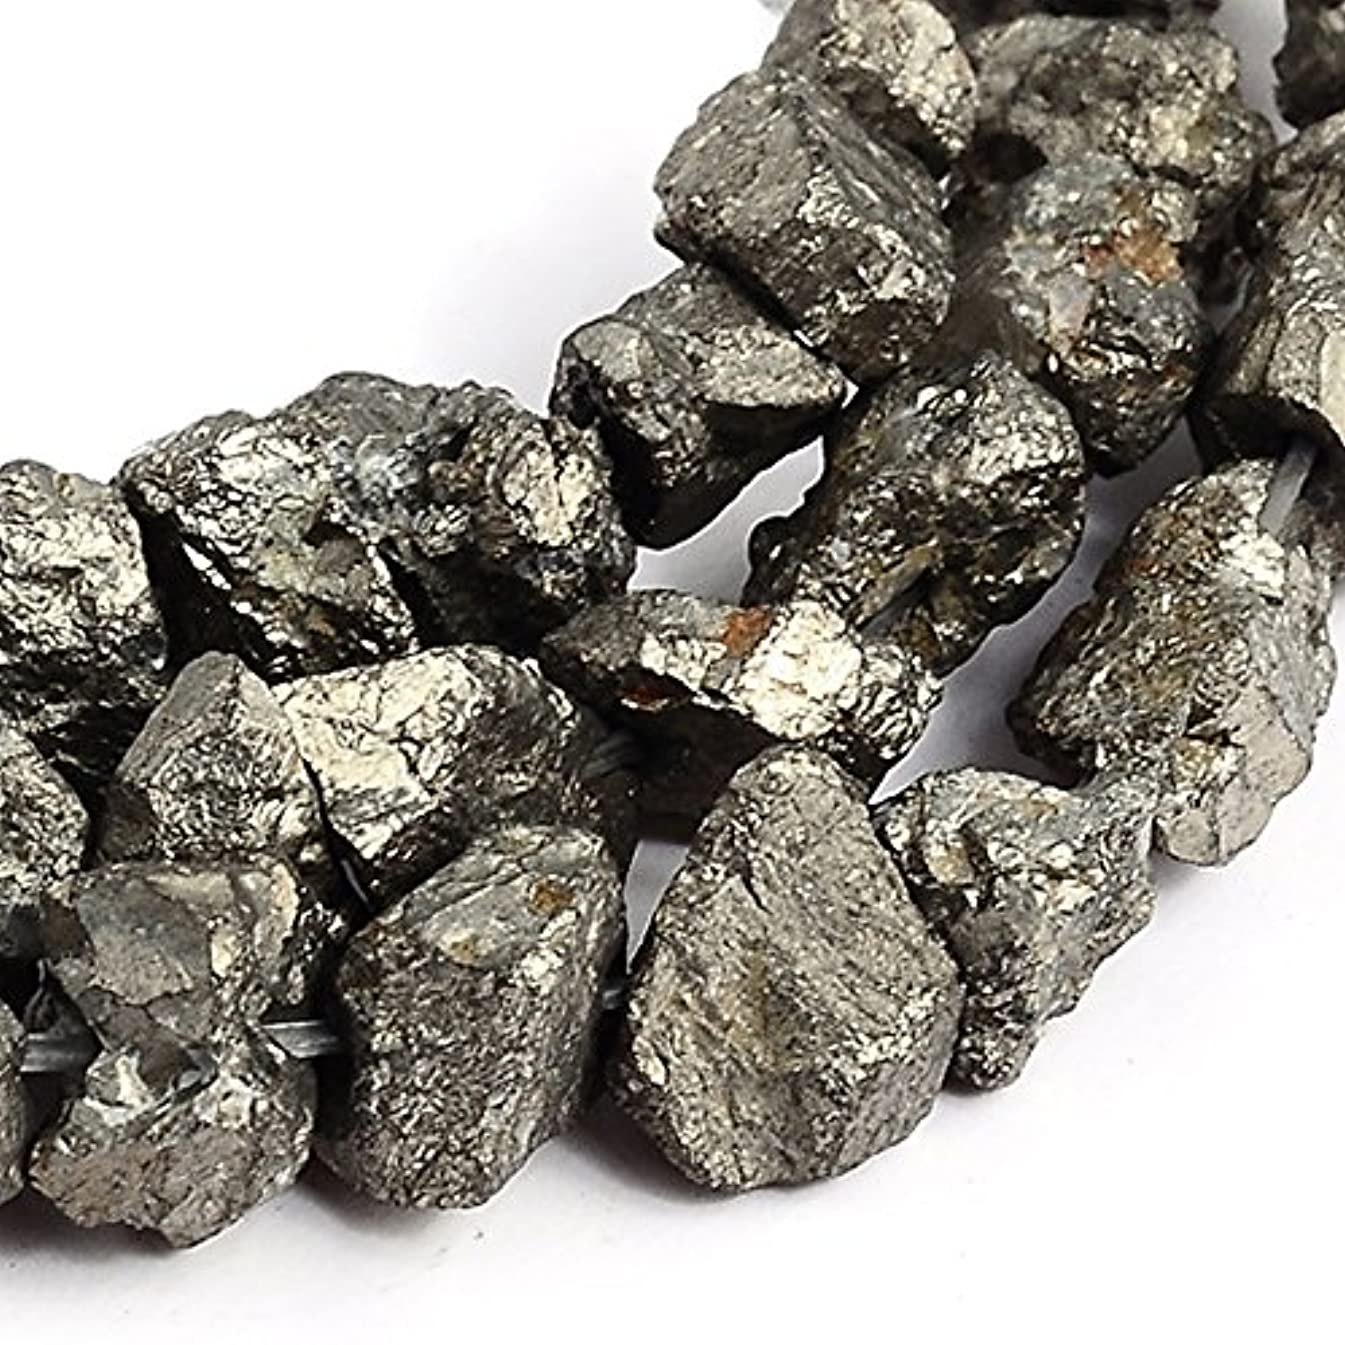 RUBYCA Pyrite Gemstone Natural Nugget Loose Beads AAA Grade for DIY Jewelry Making (1 strand 75pcs)